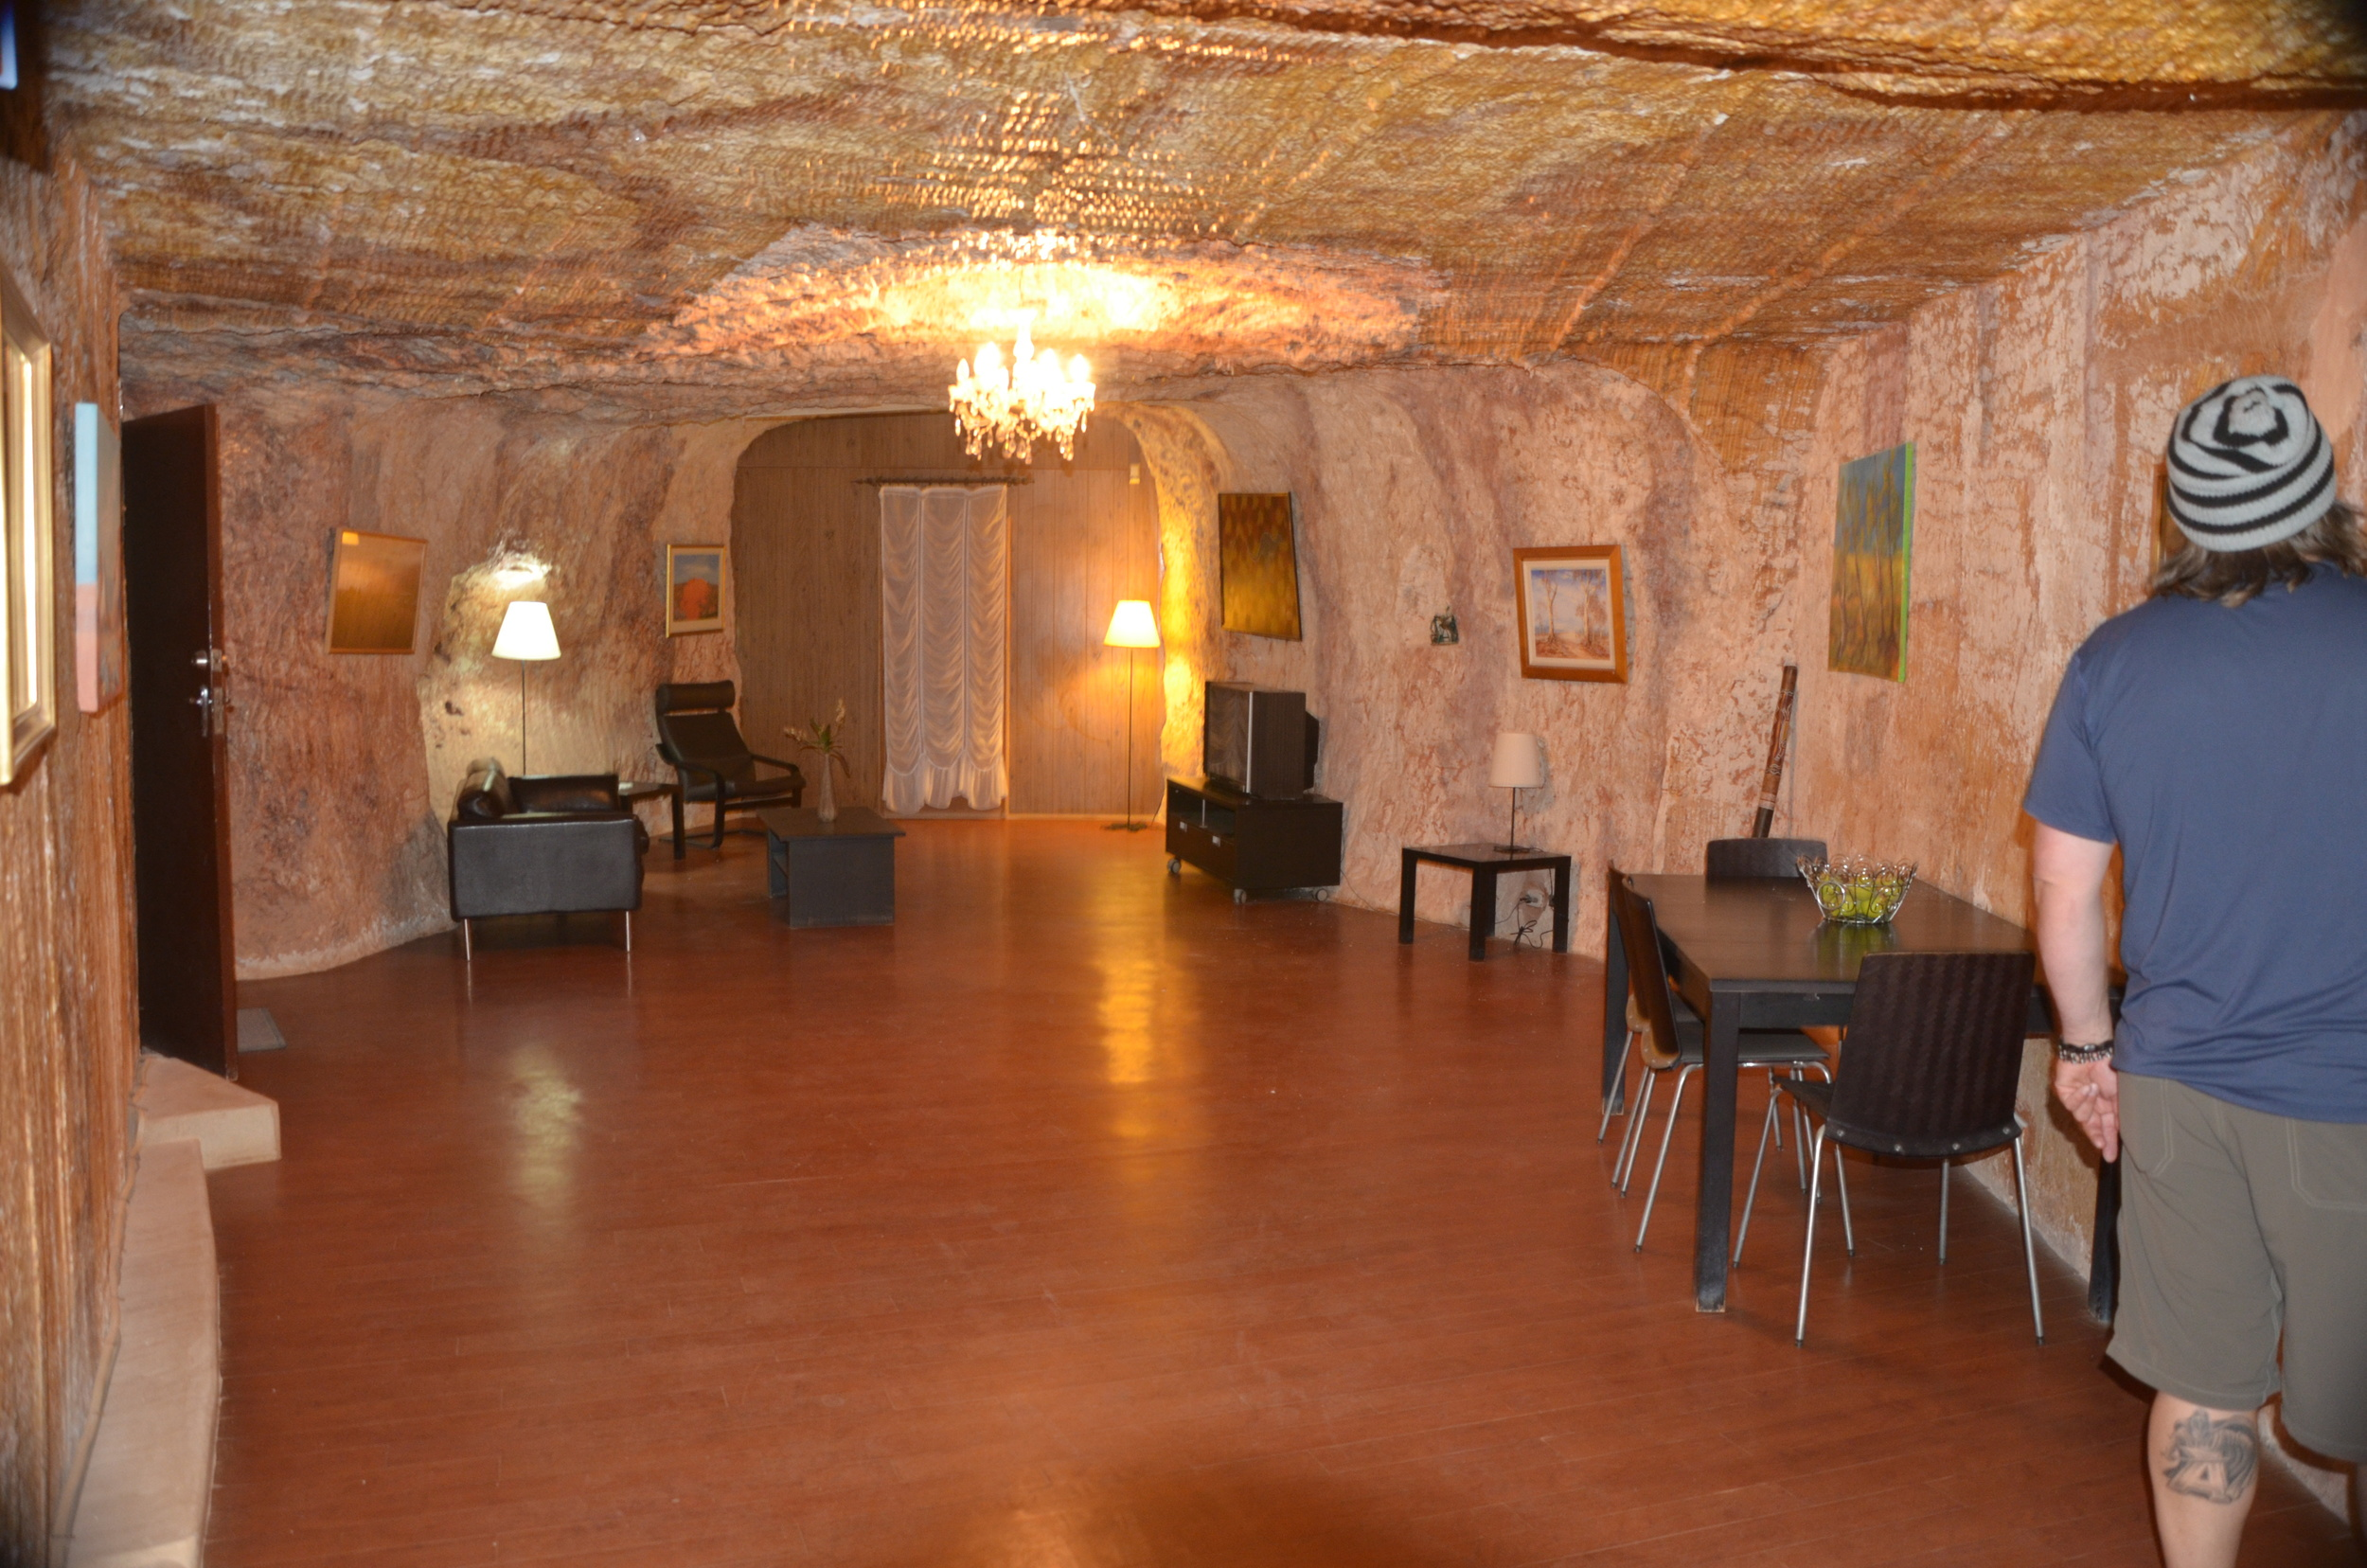 Family room of a locals dug-out. Yes you can have a chandelier underground!